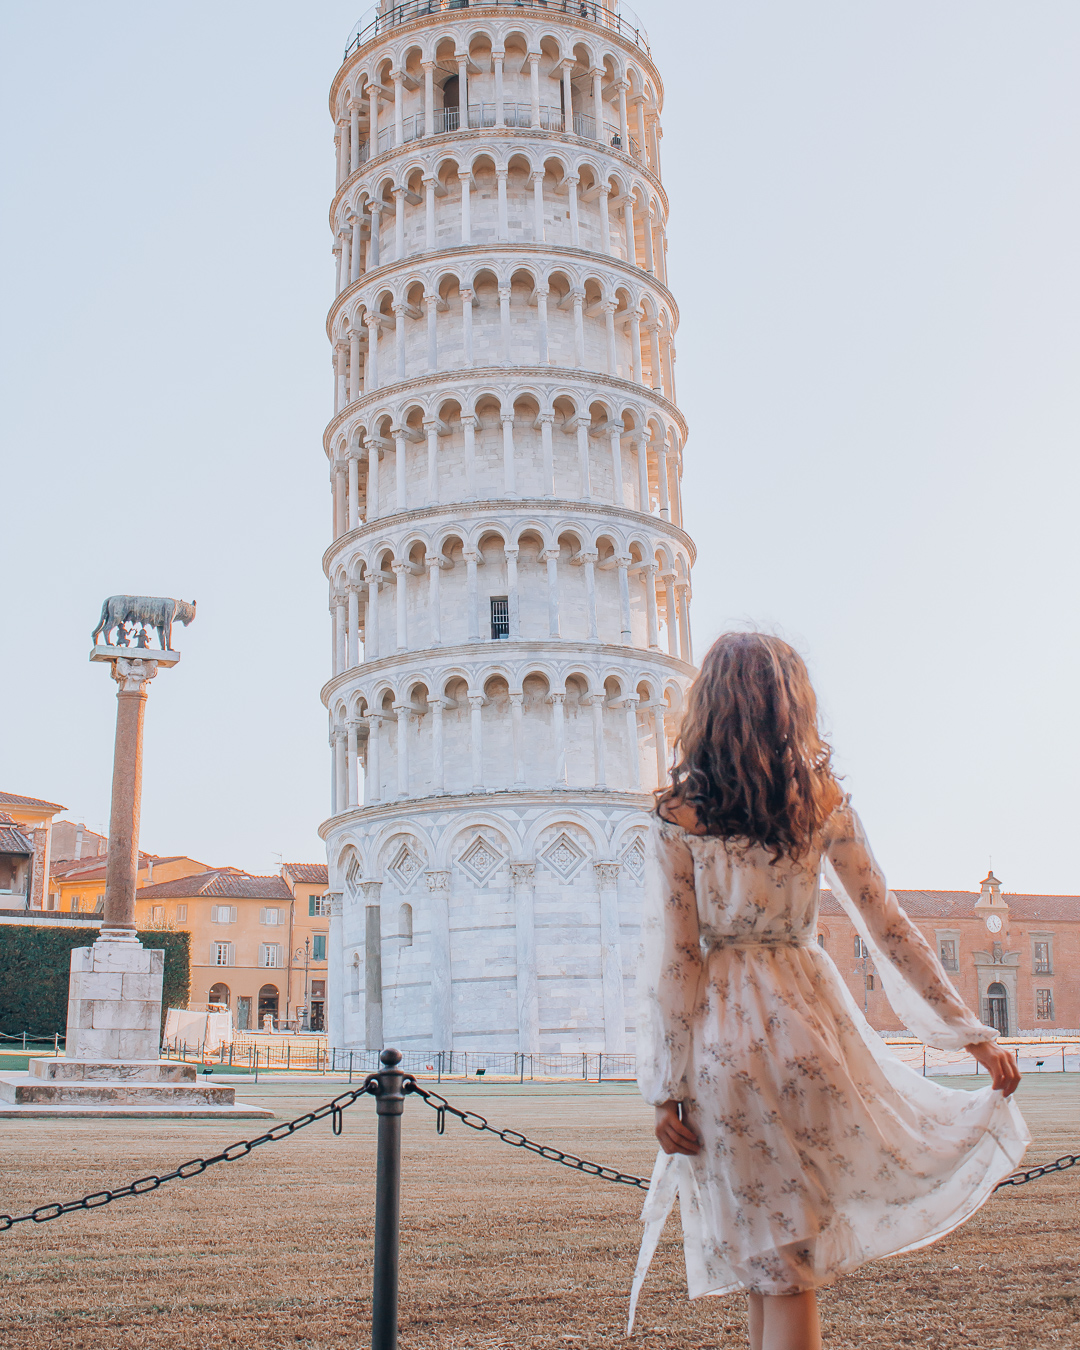 Girl in front of Tower of Pisa